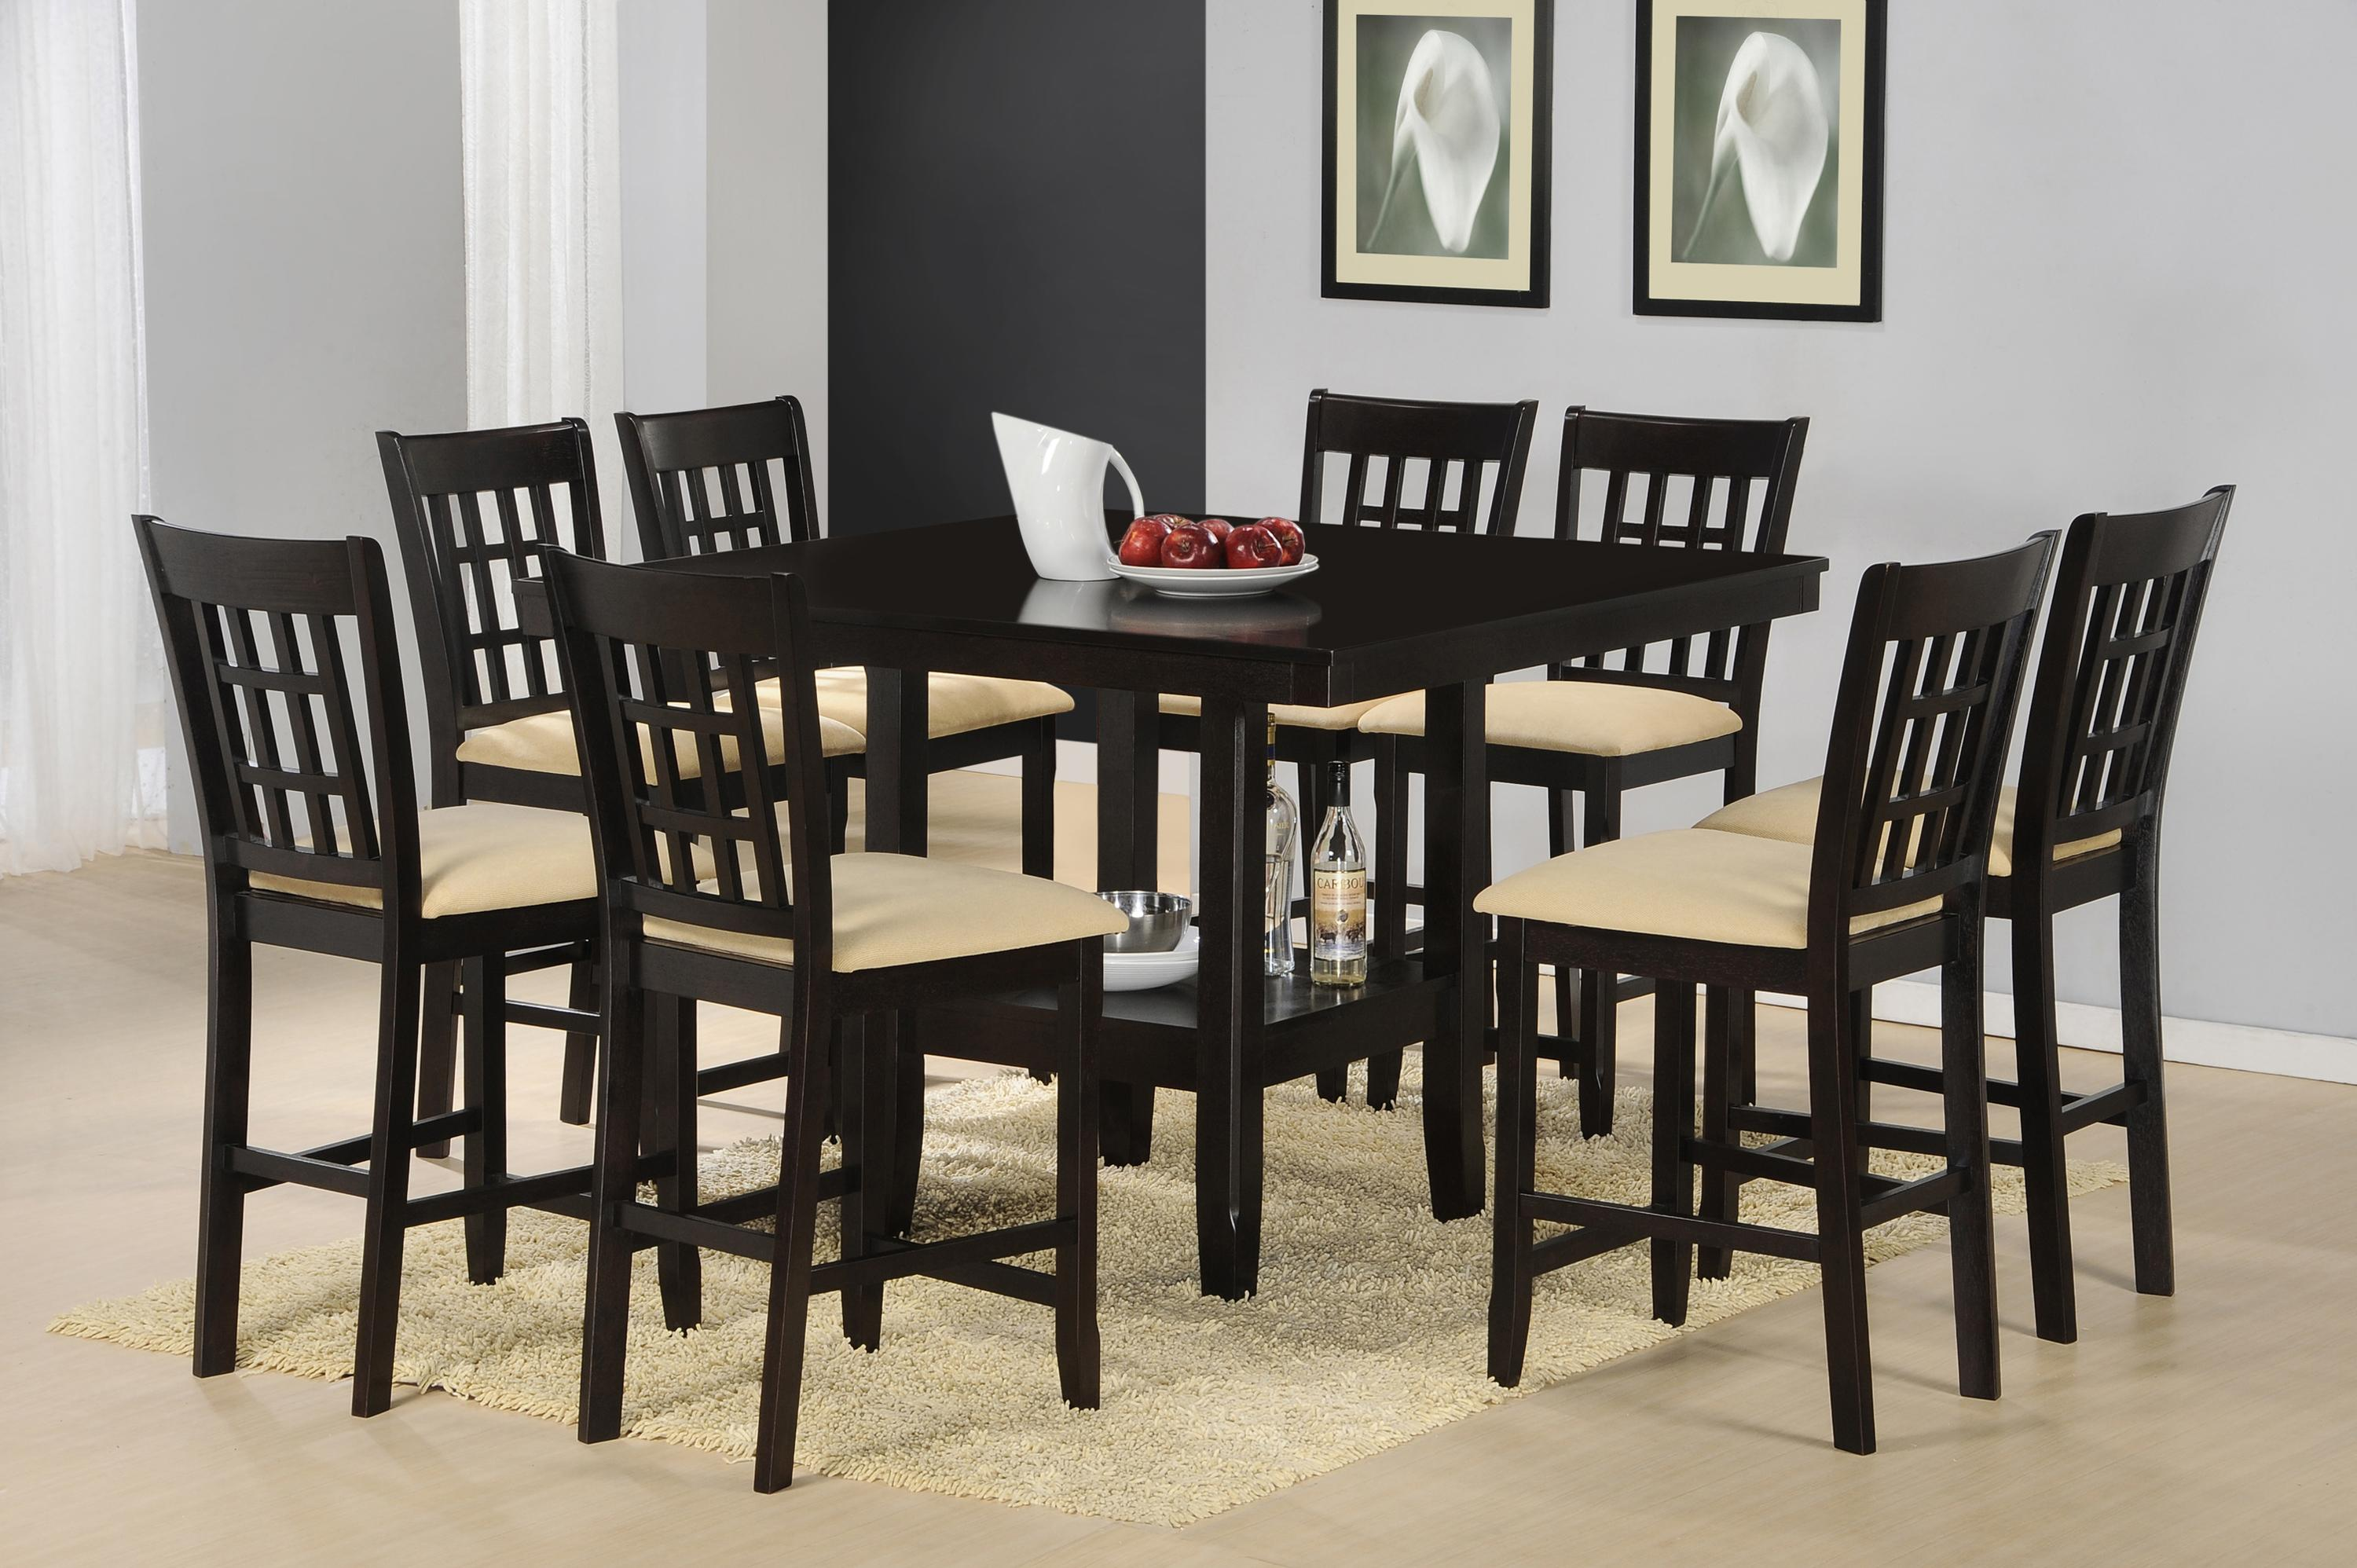 Tabacon 9 Piece Counter Height Gathering Table W/ Wine Rack Dining Set |  Rotmans | Pub Table And Stool Set Worcester, Boston, MA, Providence, RI, ...